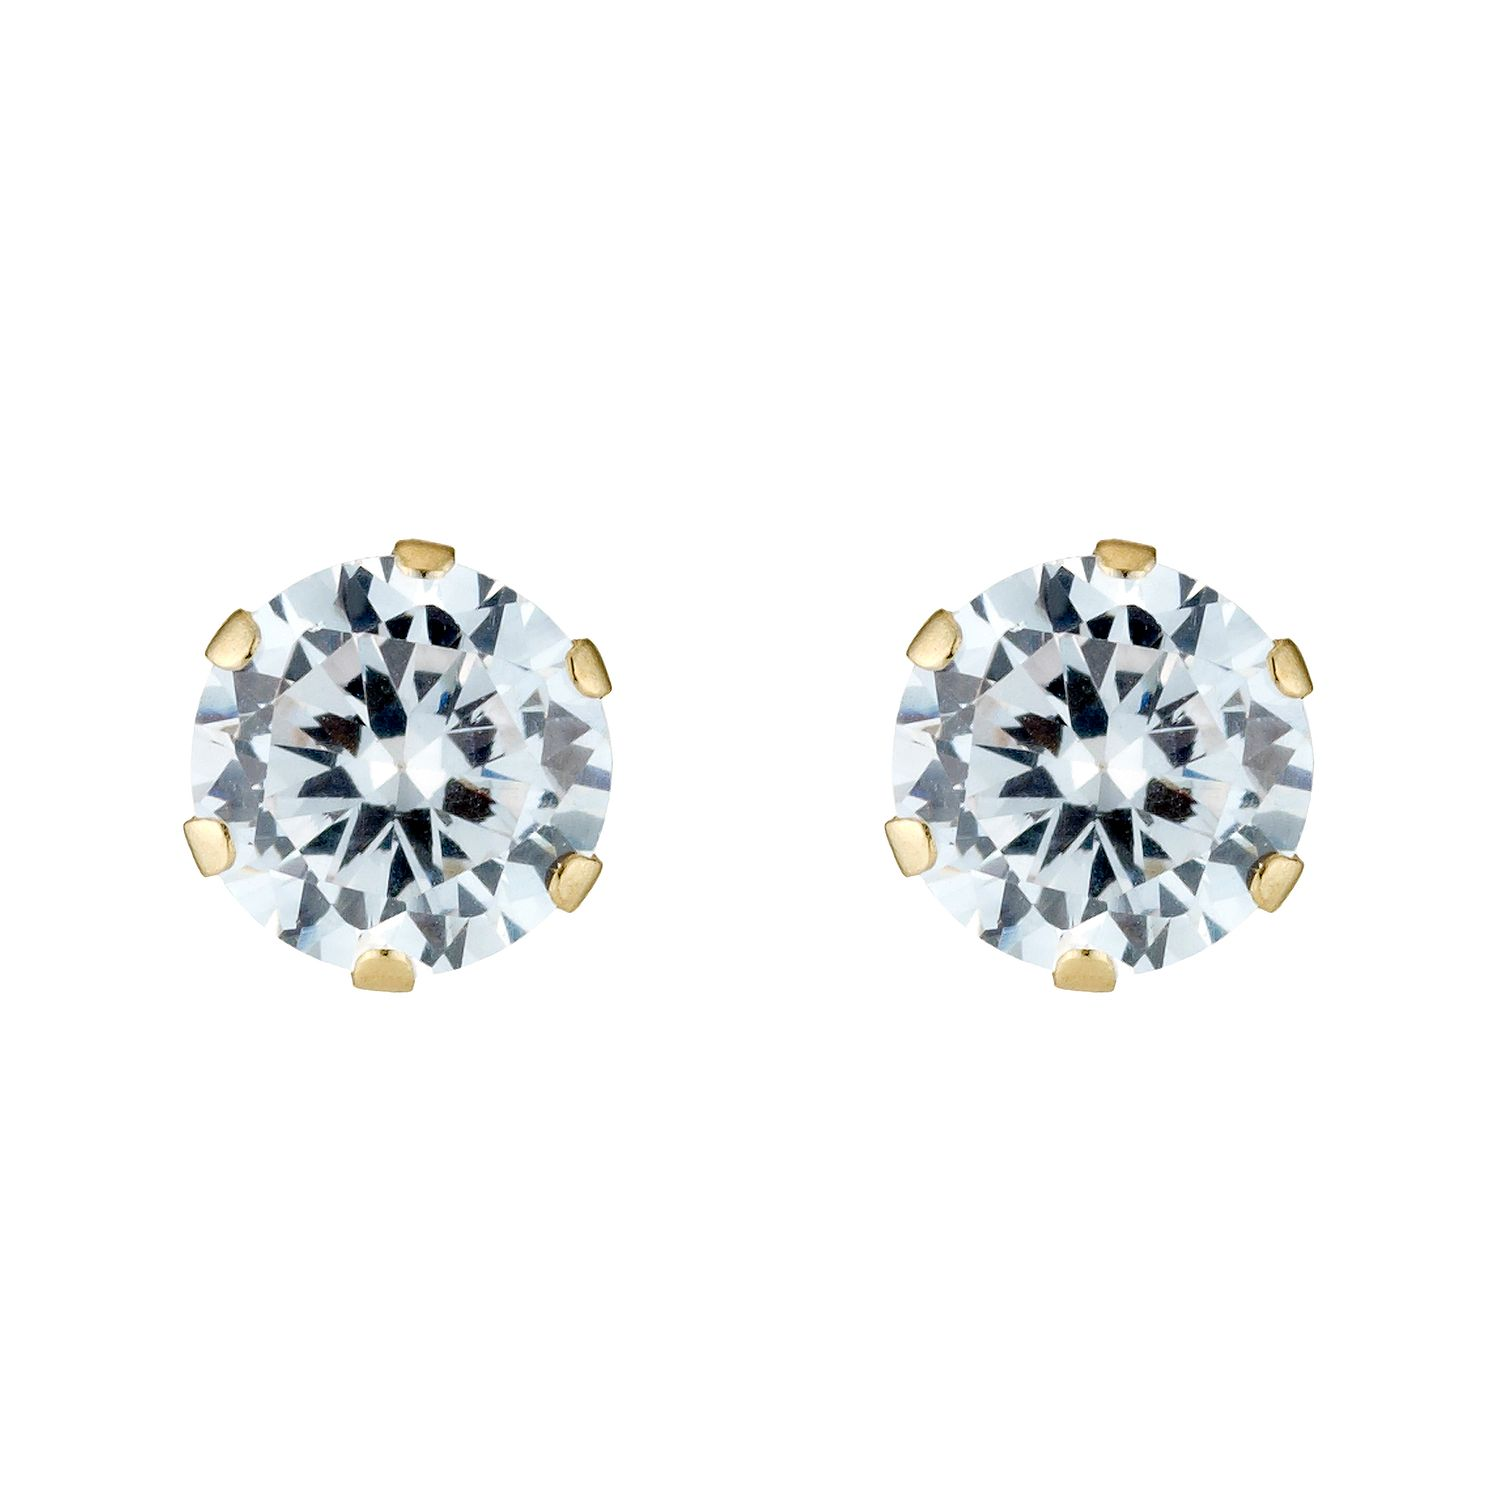 9ct Gold Cubic Zirconia Stud Earrings - Product number 3548872